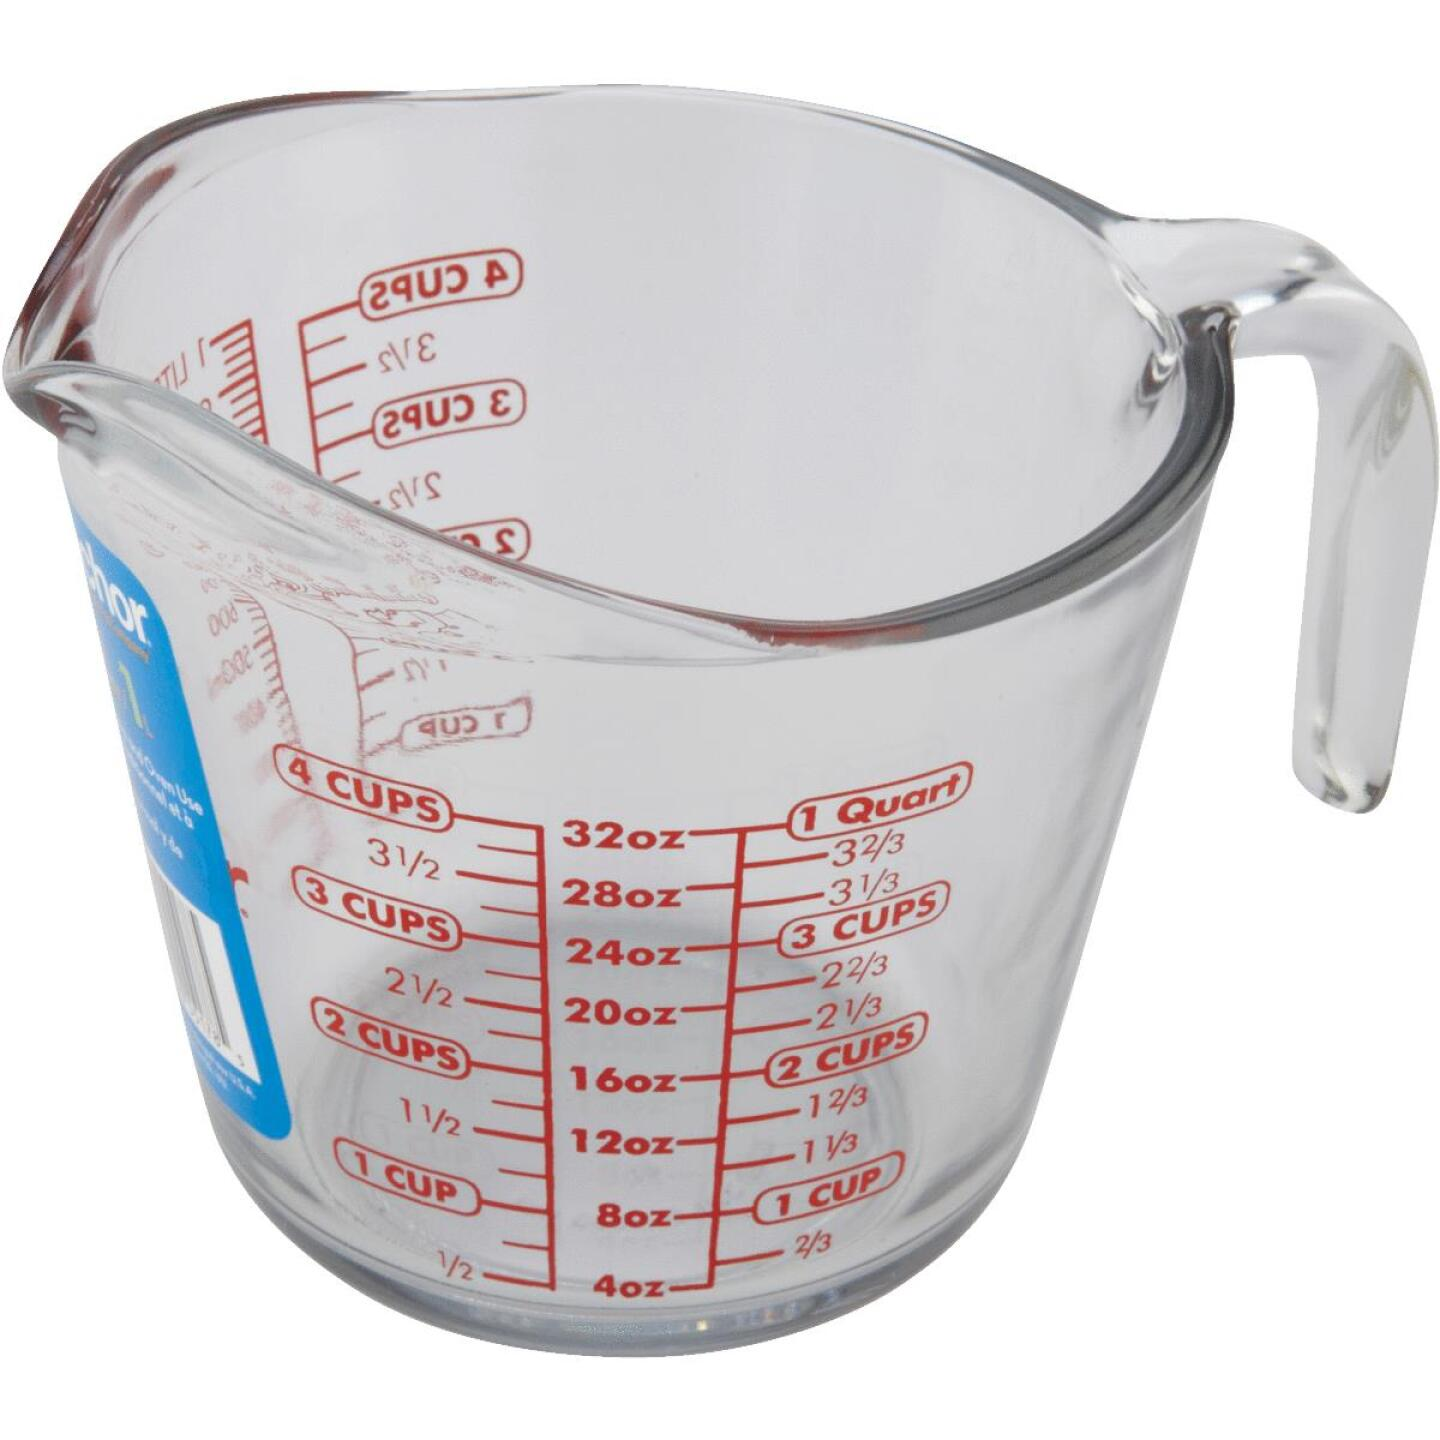 Anchor Hocking 32 Oz. Clear Glass Measuring Cup Image 2